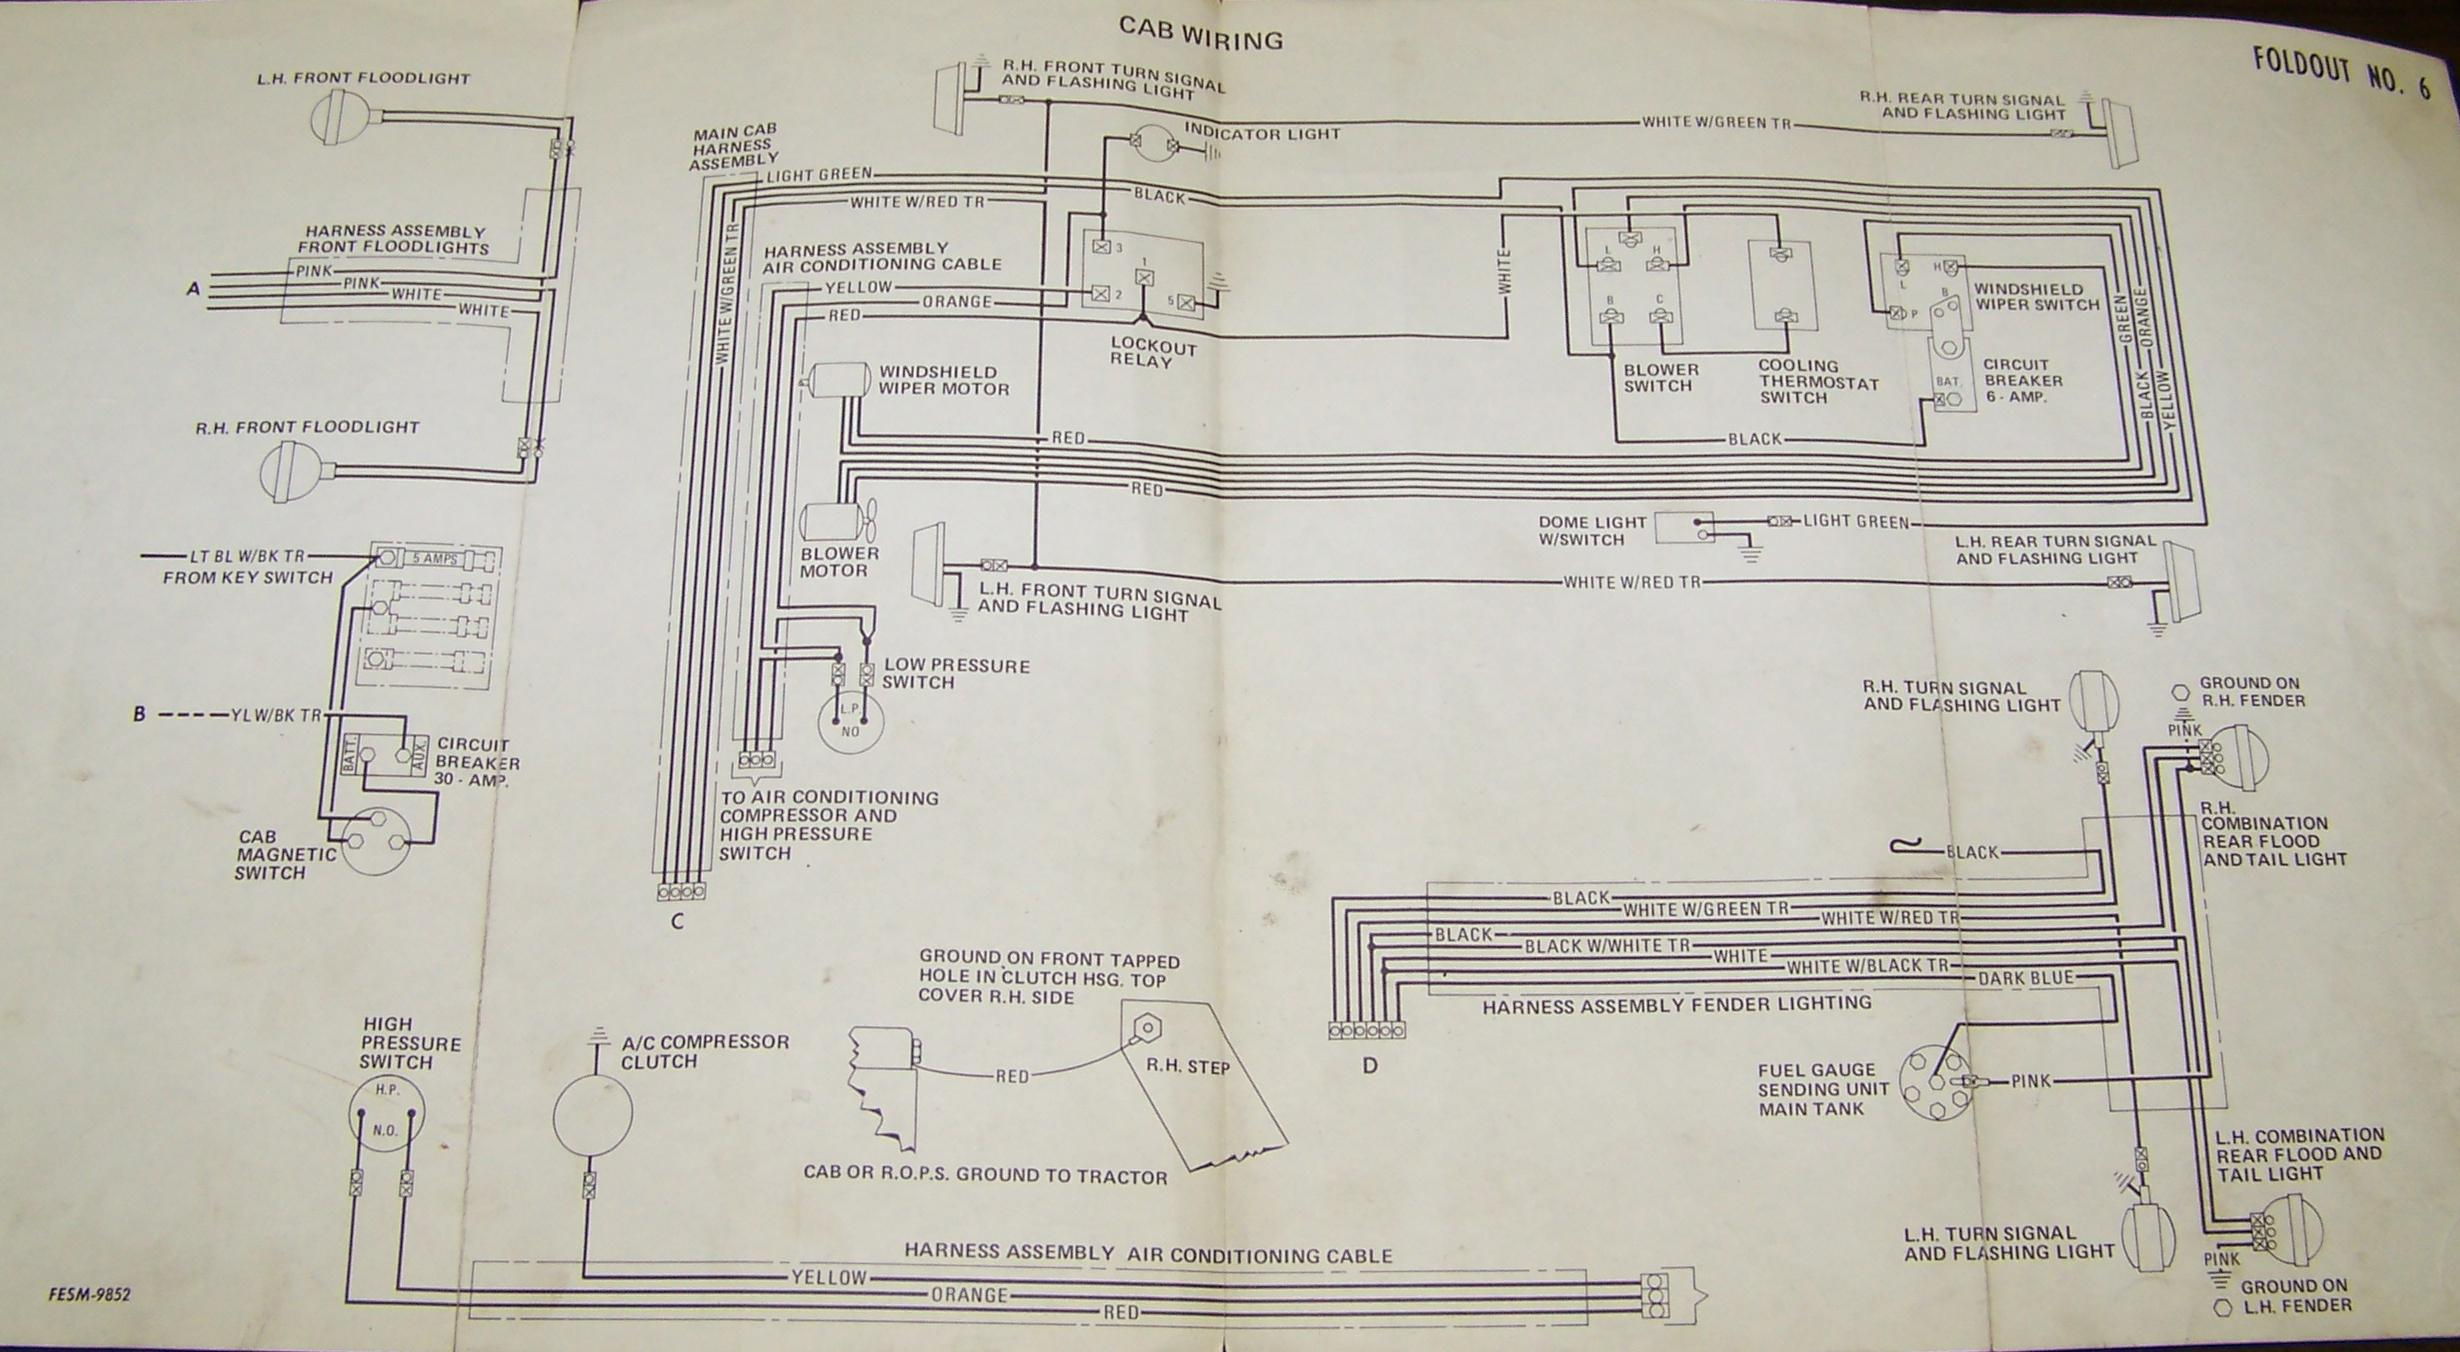 farmall tractor wiring diagram wiring diagramscarter \u0026 gruenewald co inc ih farmall tractor electrical wiring 1949 farmall cub wiring diagram farmall tractor wiring diagram